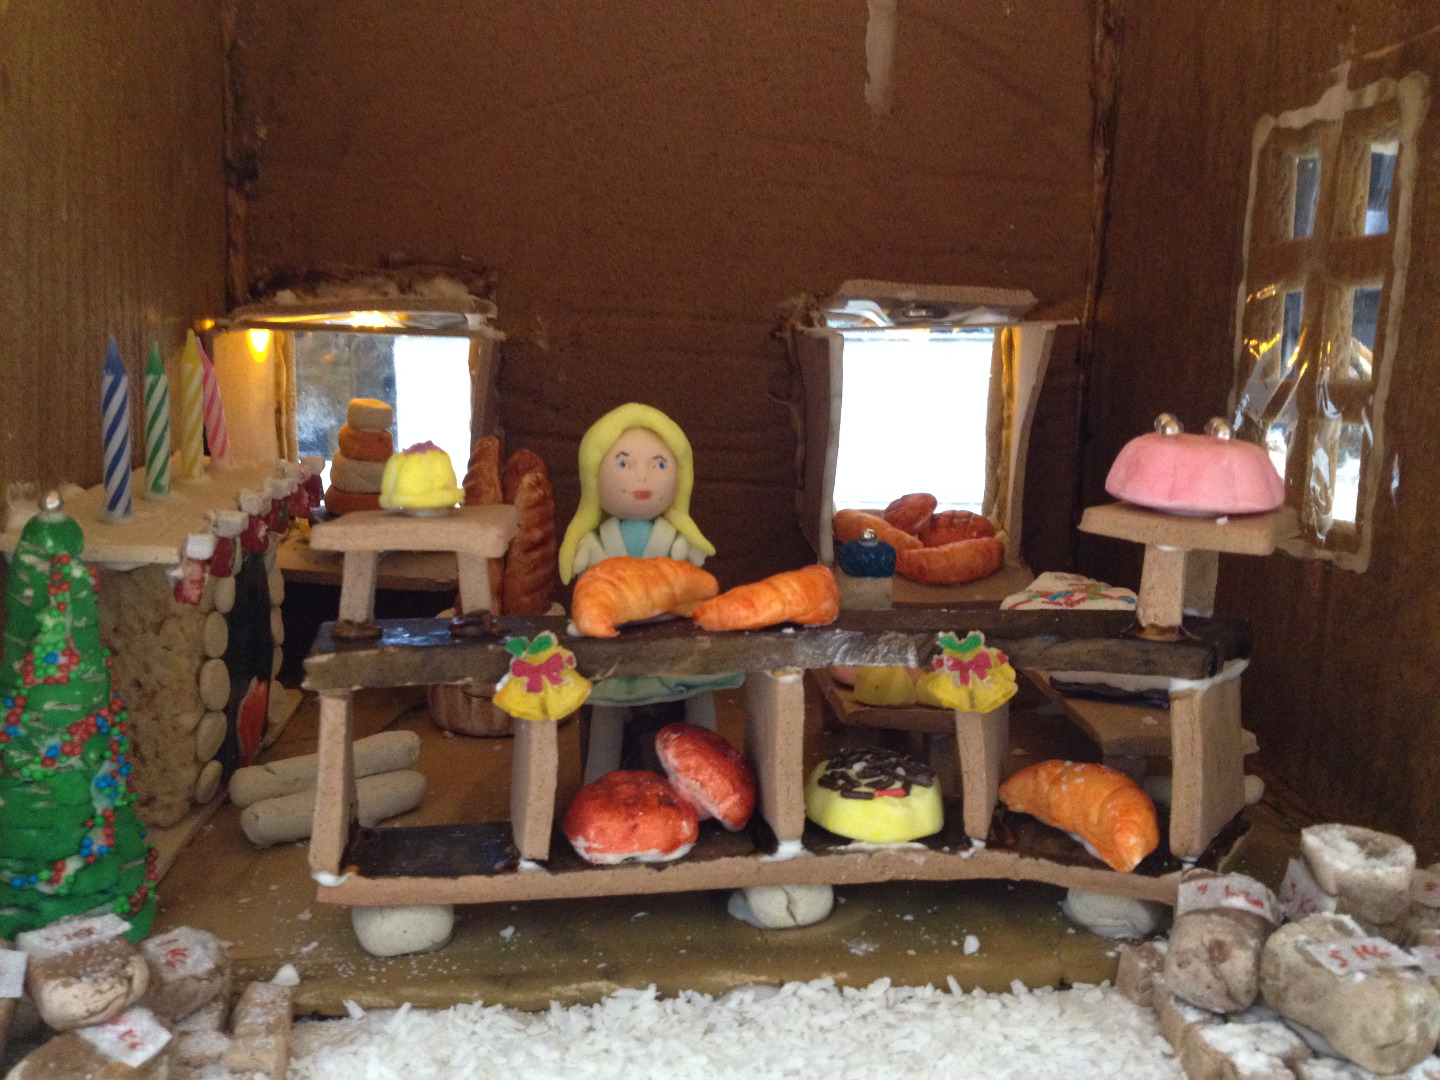 Picture of Gingerbread Bakery (Dollhouse Style)